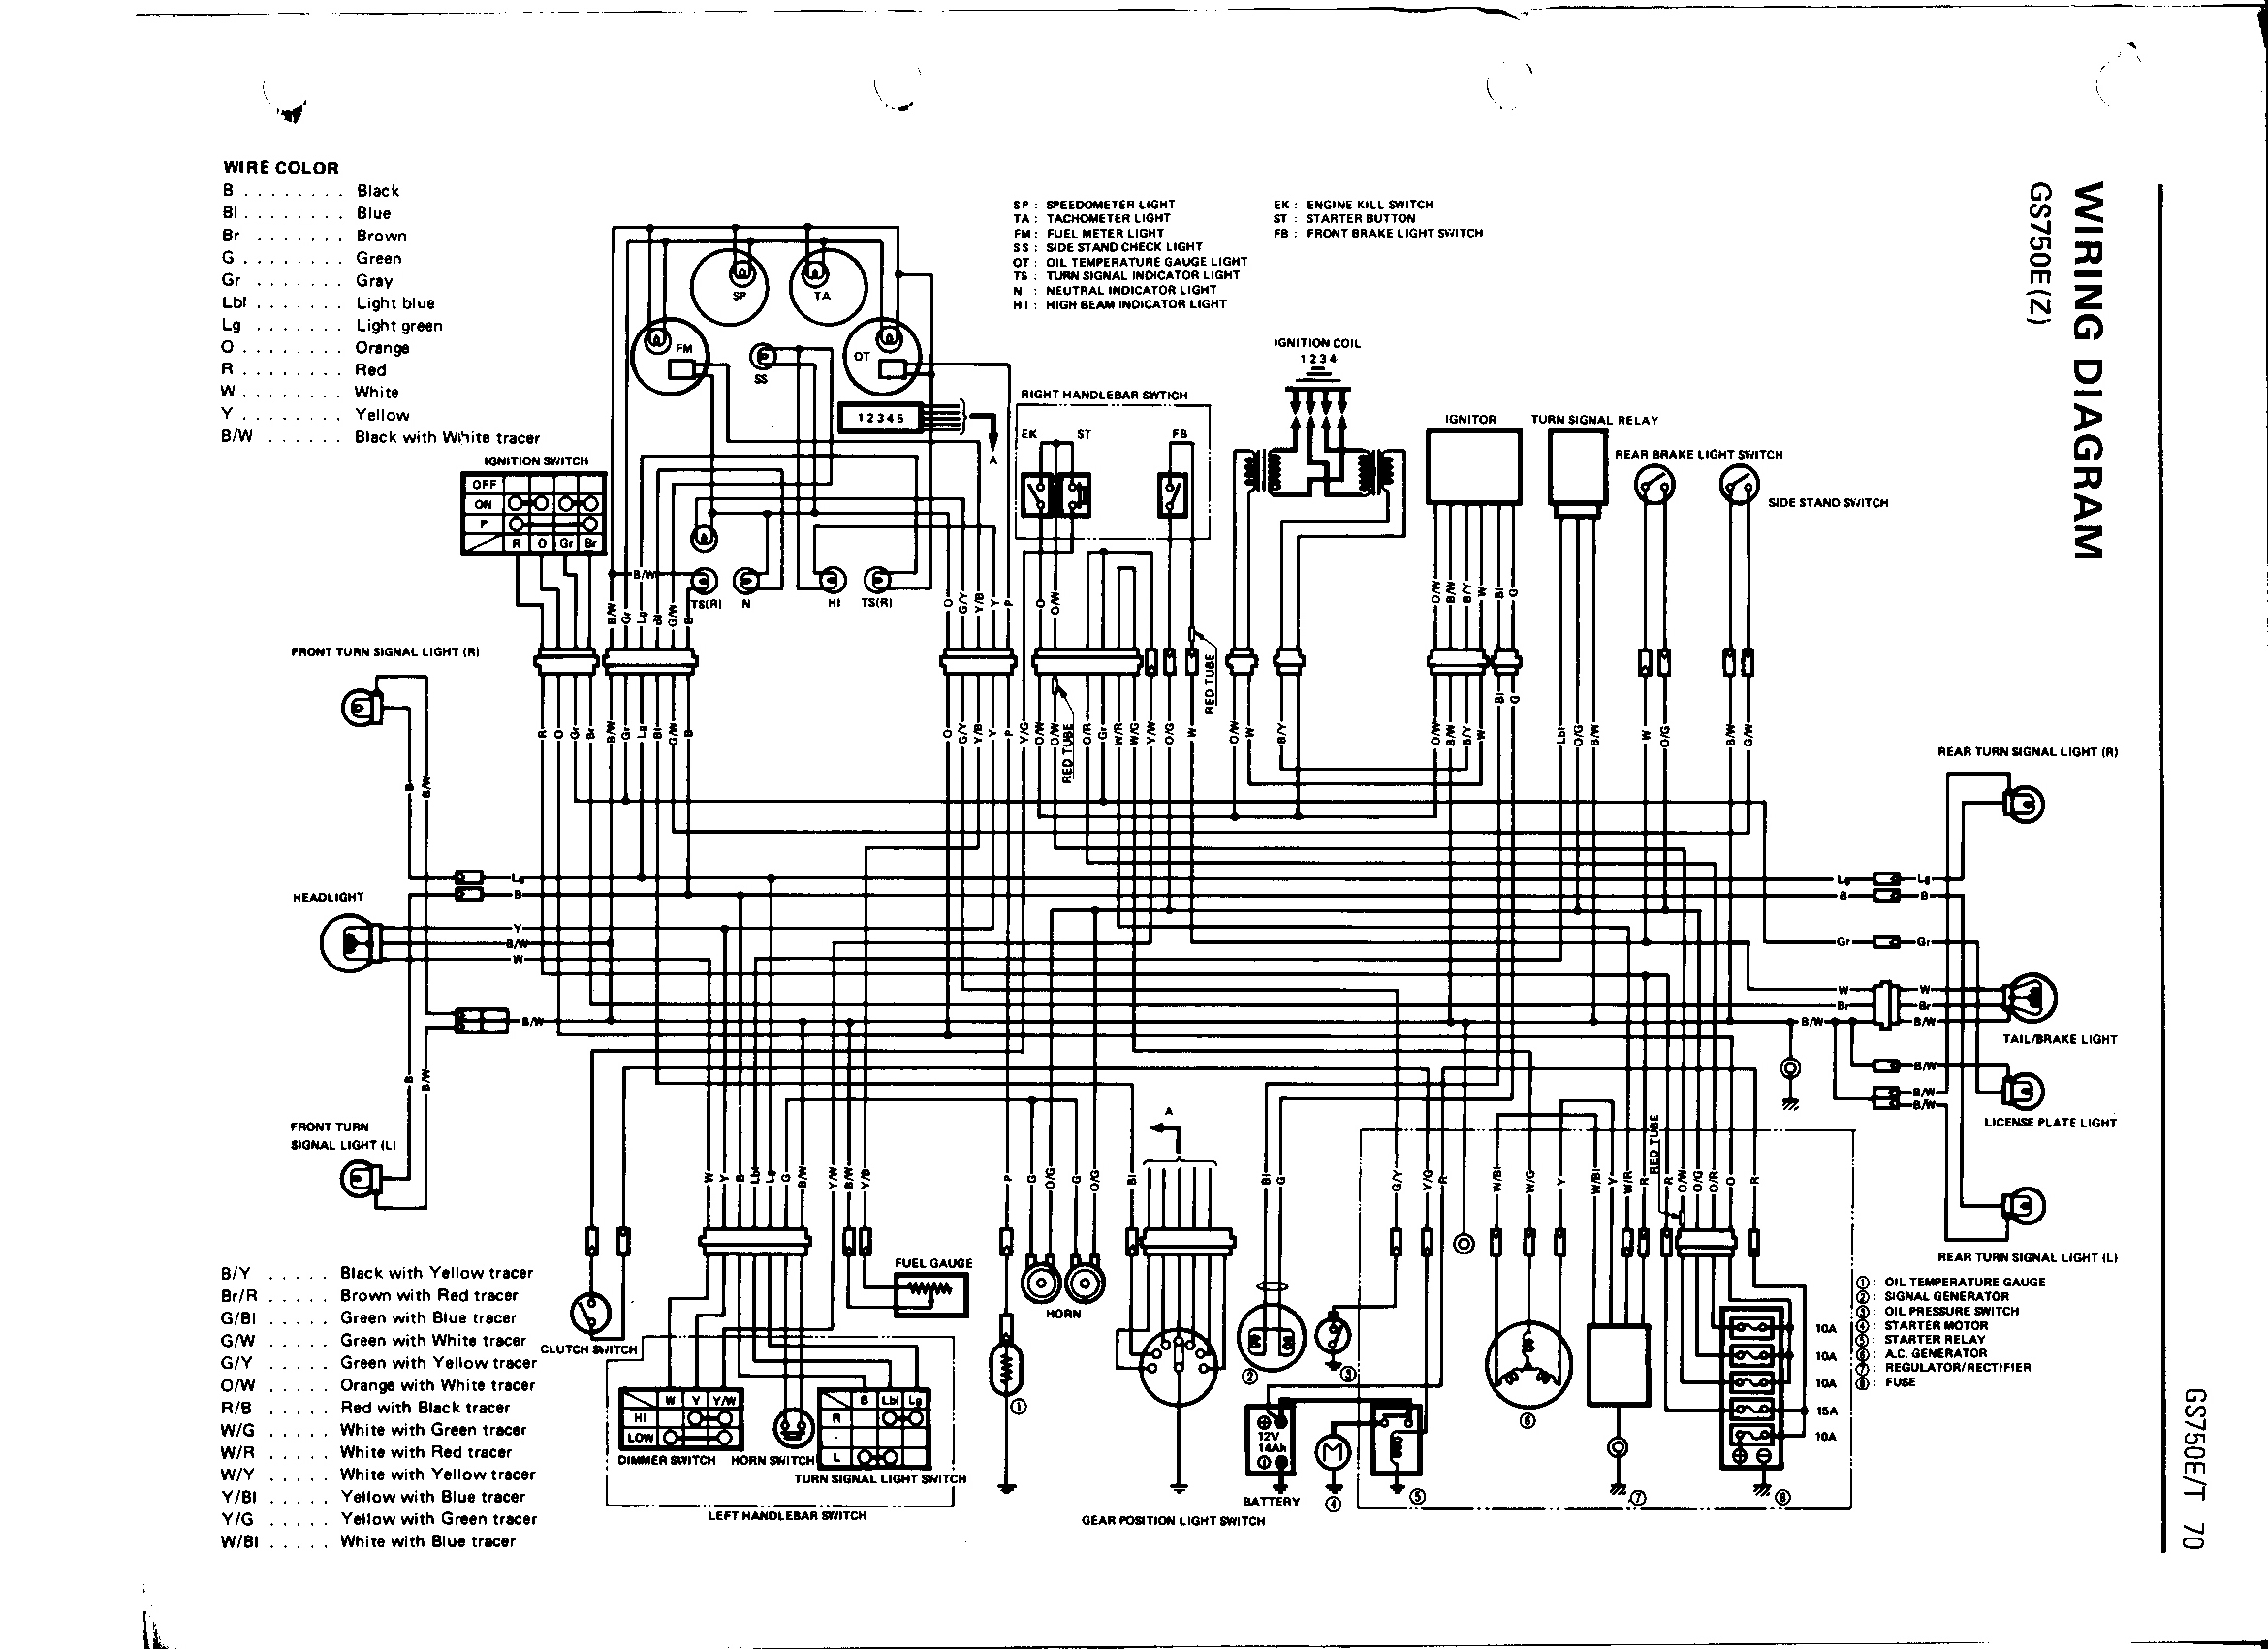 [WRG-7963] 80 Suzuki Gs 850 Wiring Diagram